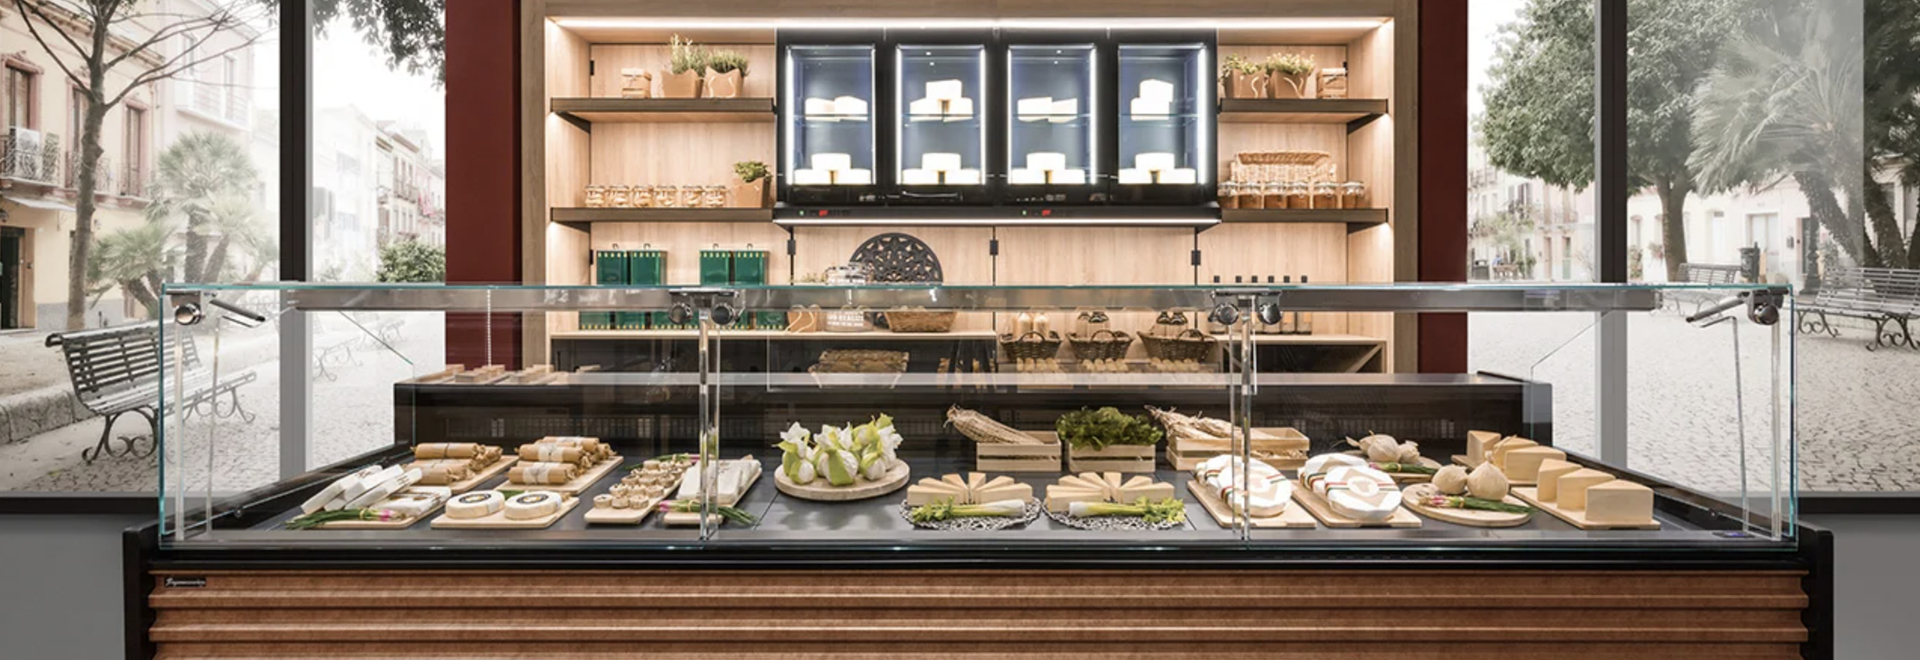 Frigomeccanica presents its new range of high-tech food showcases